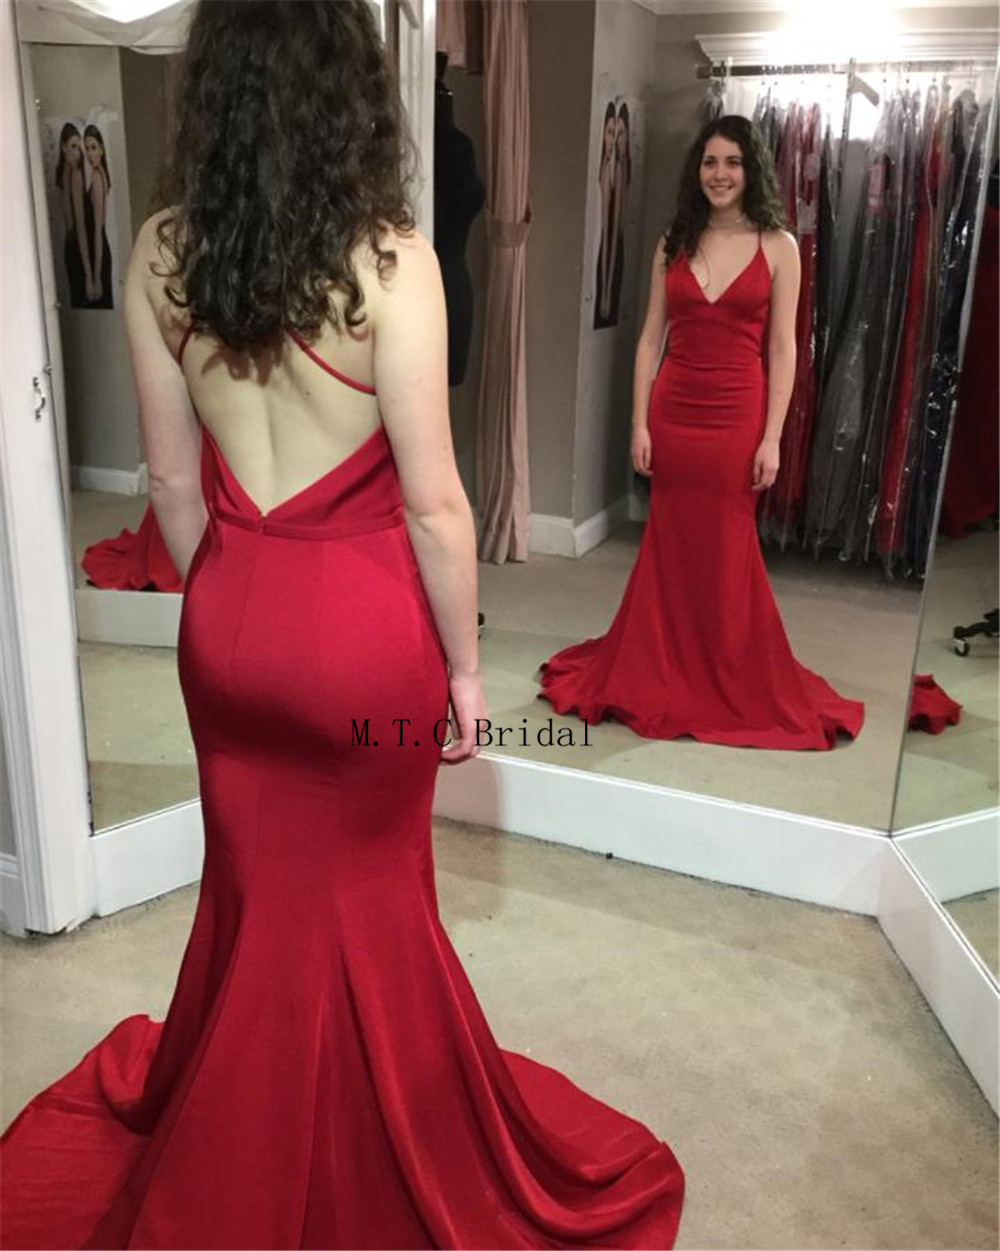 Sexy Red Mermaid Backless Evening Dress Spaghetti Strap Sweetheart Floor Length Long Prom Gown 2019 Cheap Women Party Dresses